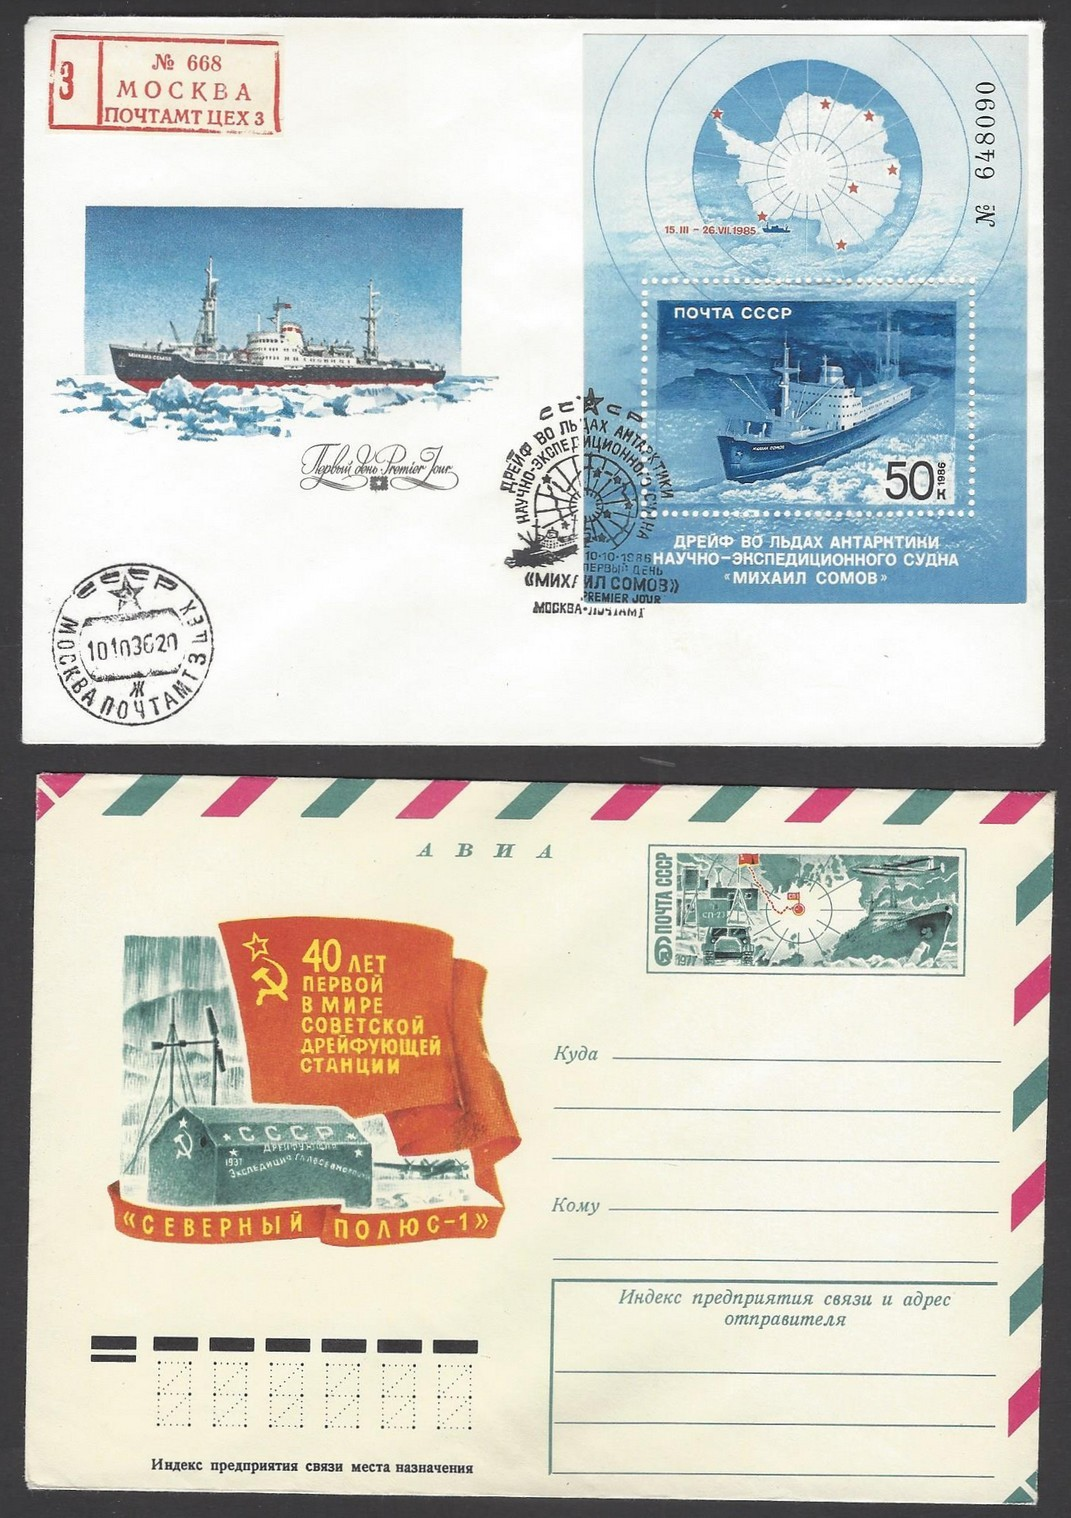 USSR Russia Ships / Ice Breakers themed covers (36) | eBay